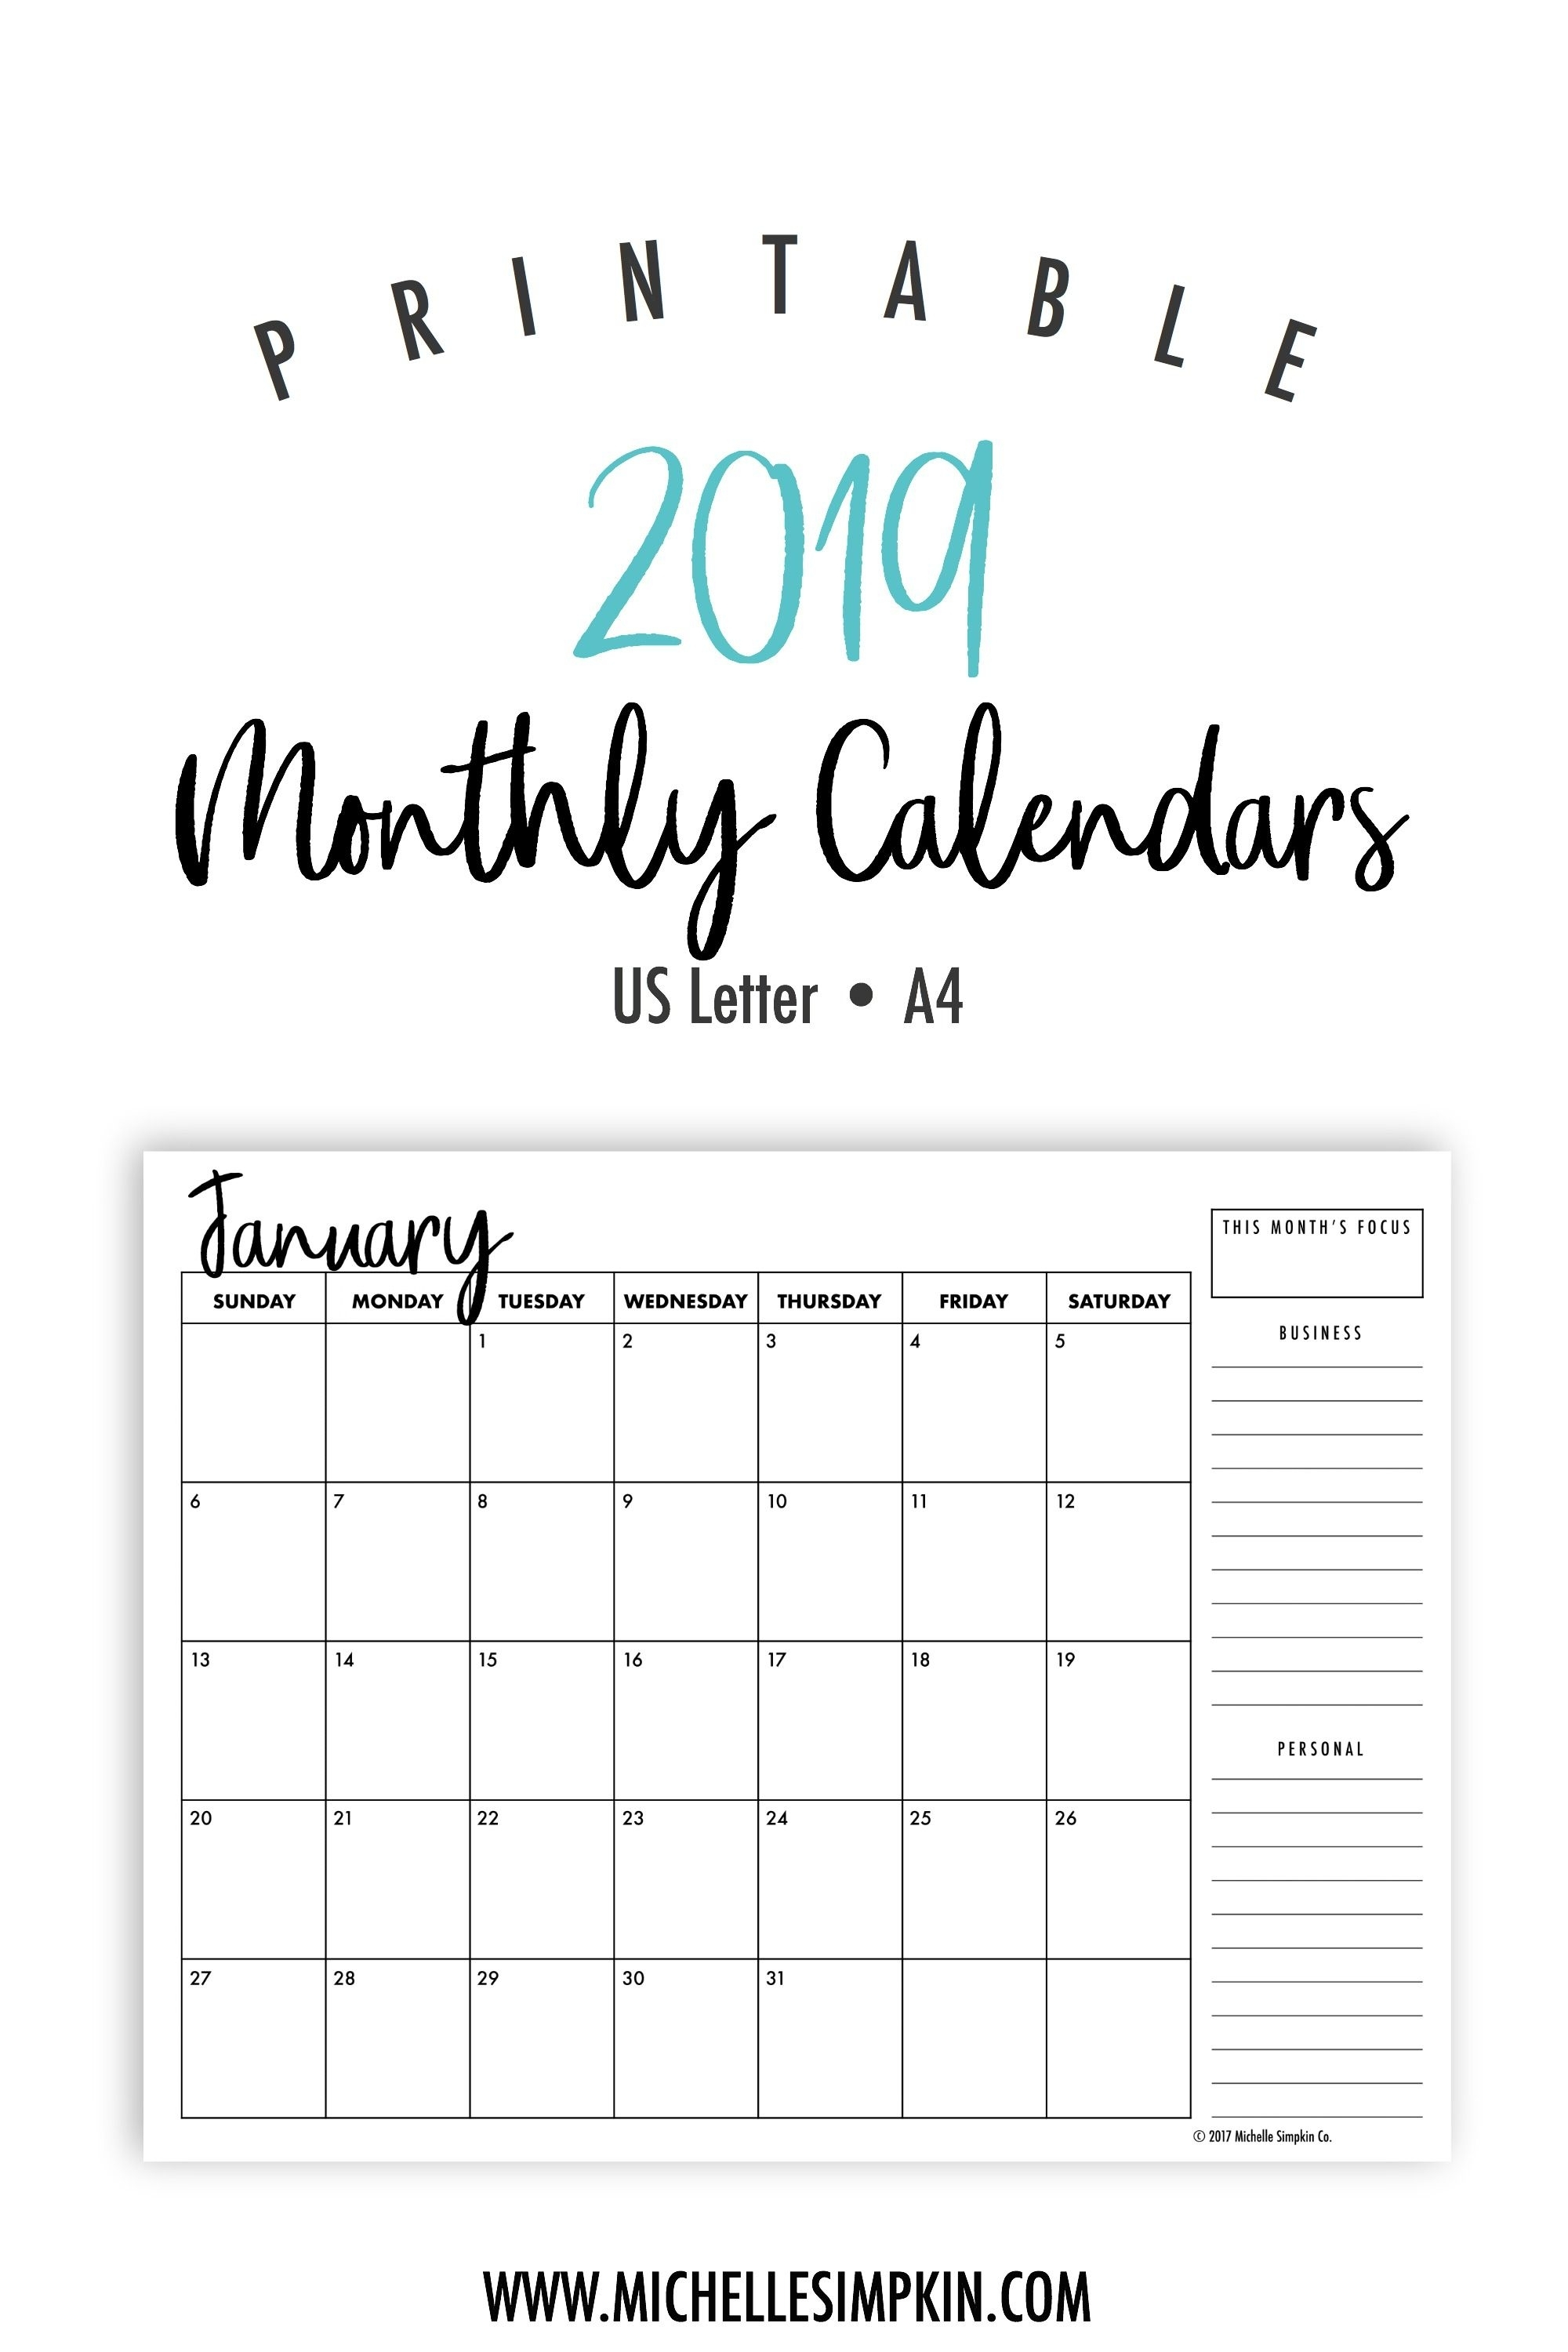 2019 Printable Calendars - Plan Out Next Year With These Ink with Printable Calendar 2019 With Lines